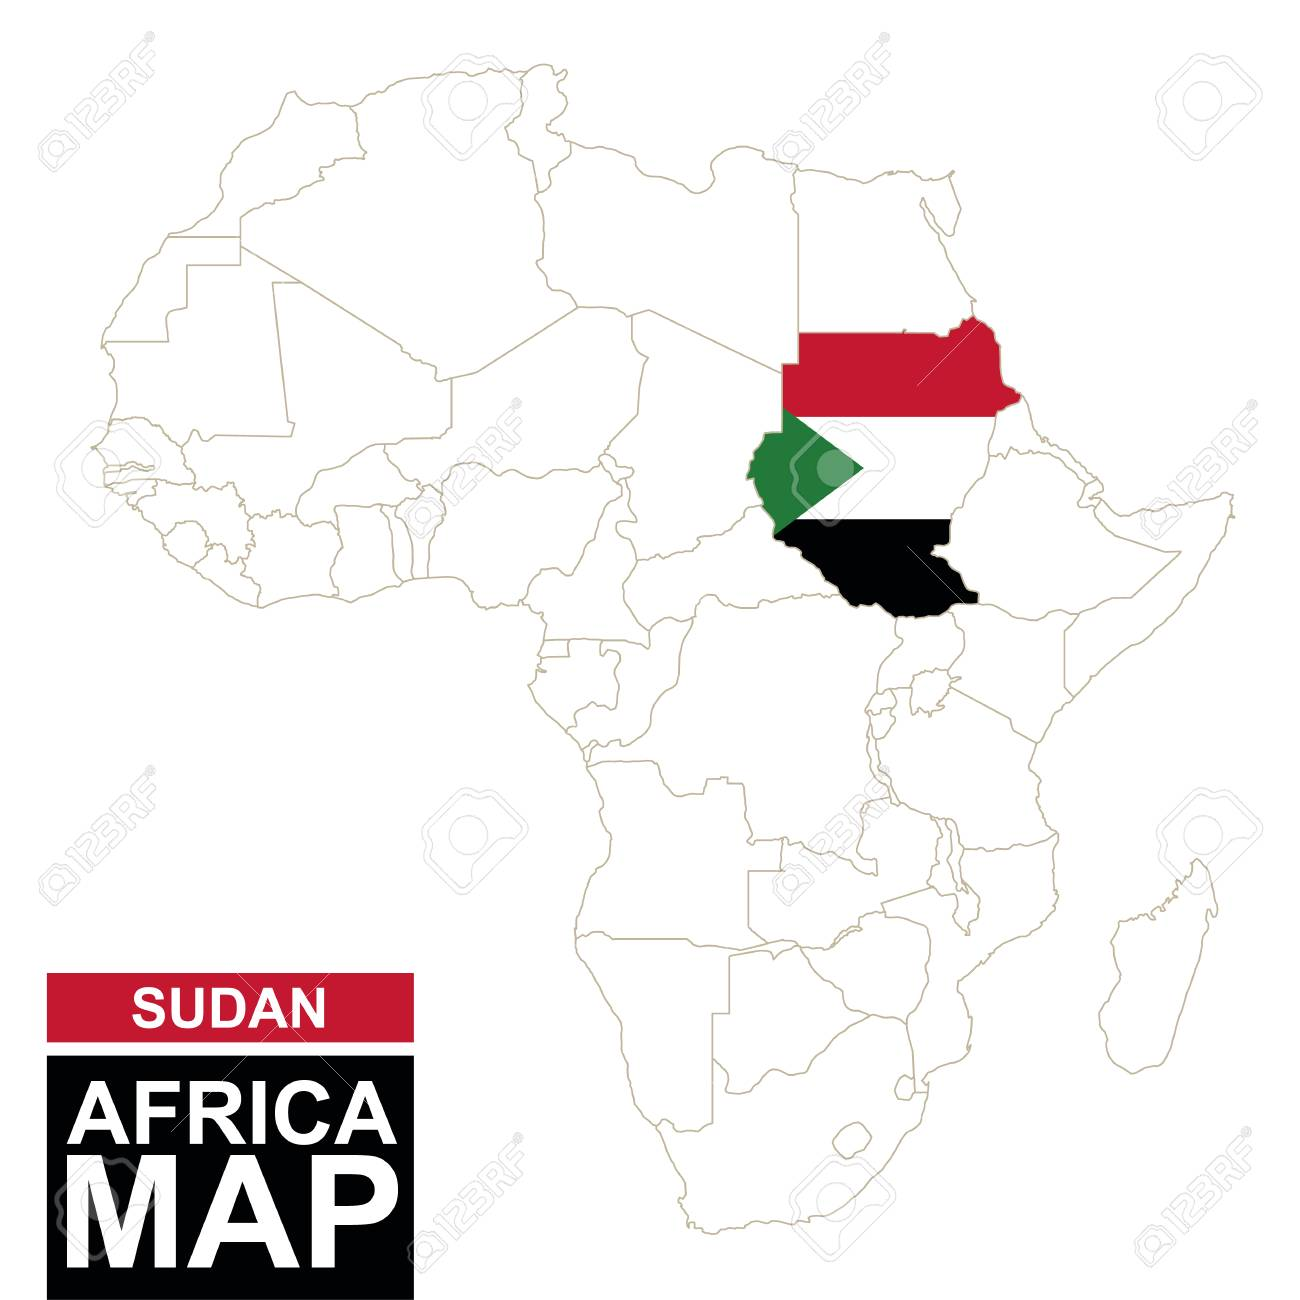 Africa Contoured Map With Highlighted Sudan. Sudan Map And Flag ...